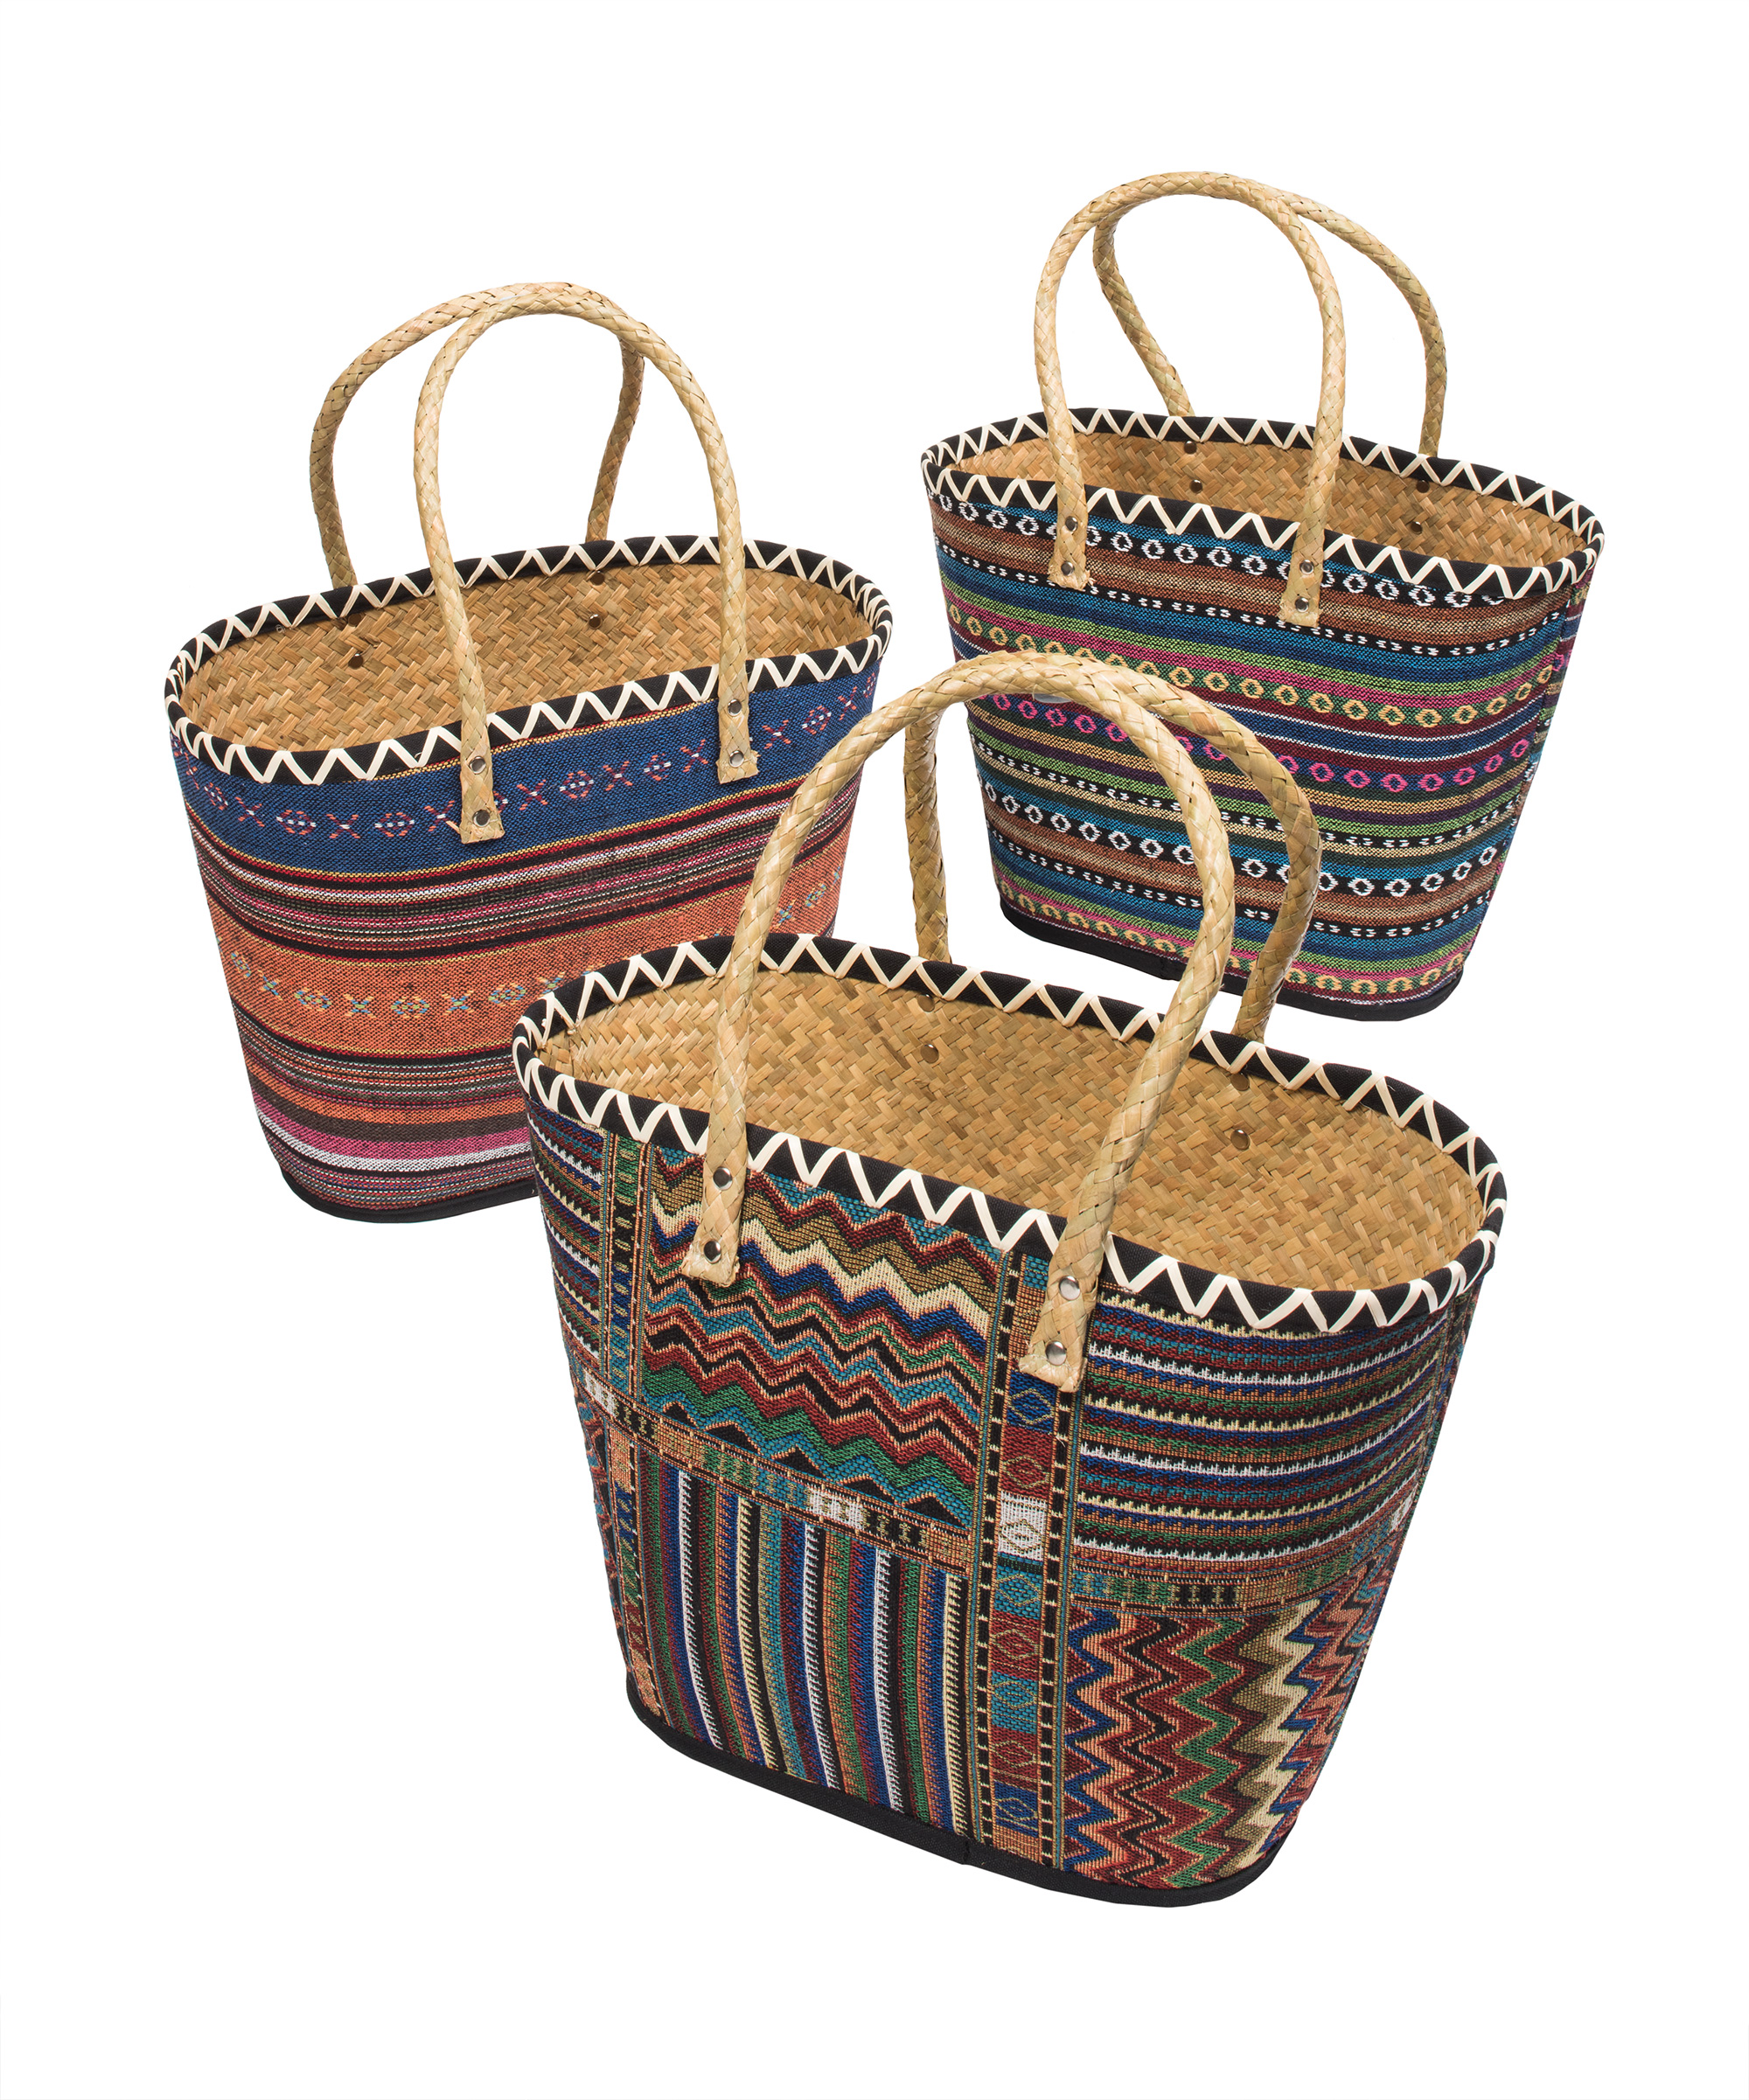 Gorgeous FairTrade Natural Woven Bags!